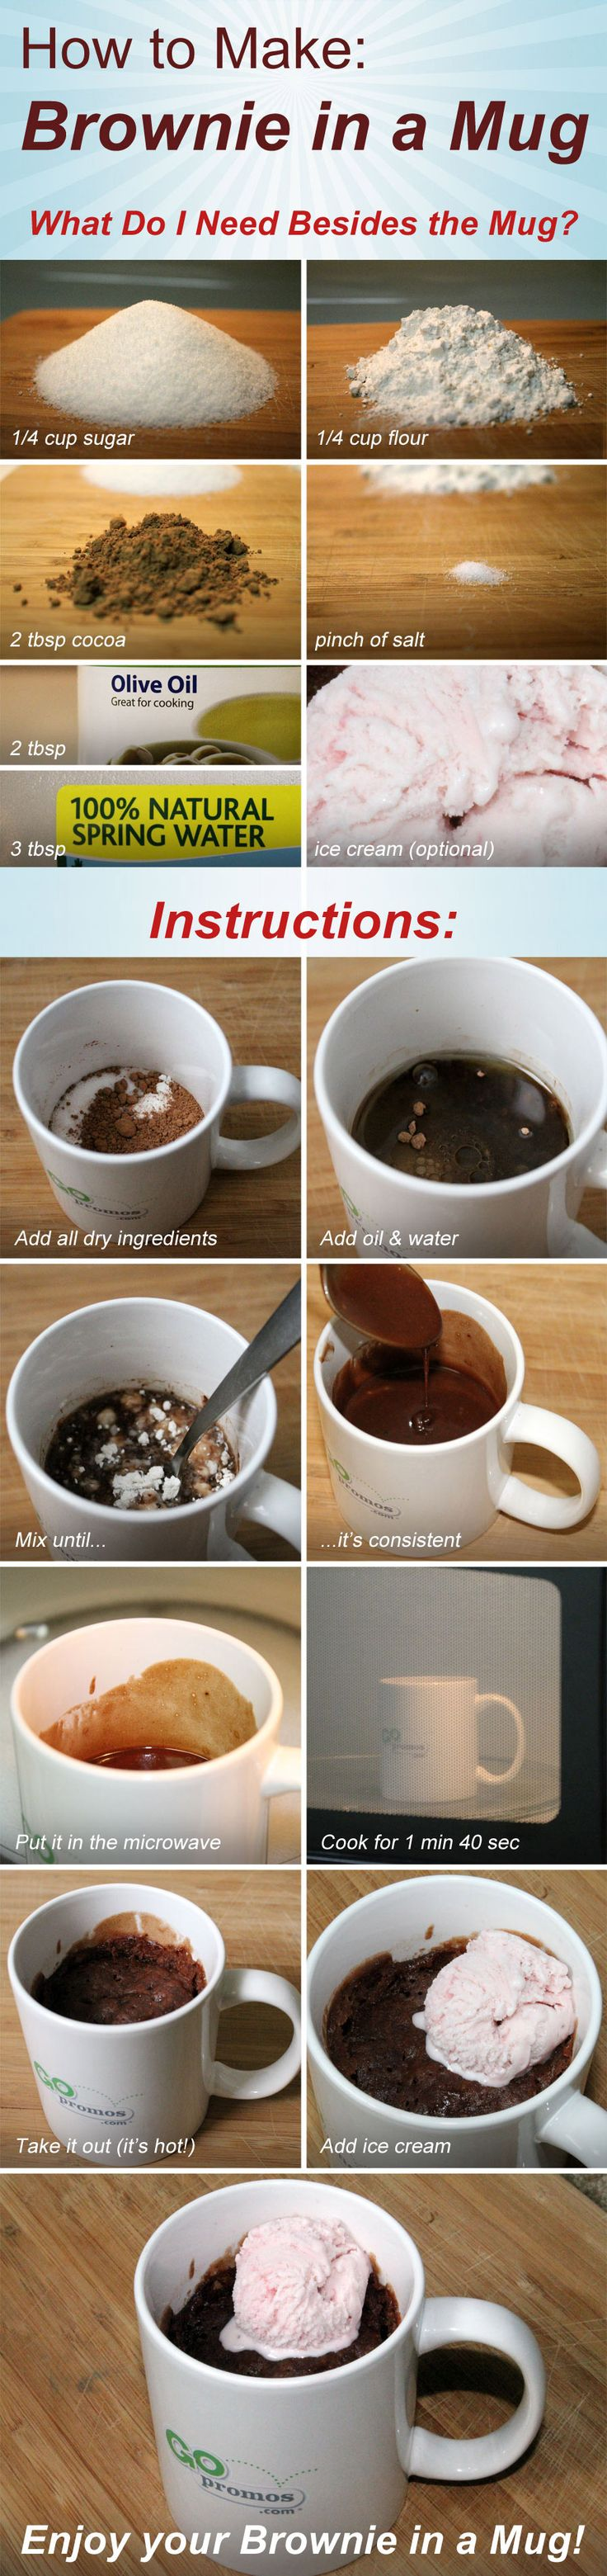 How to make a brownie in a mug!  -stevia instead of sugar; applesauce, pumpkin or banana instead of oil, even yogurt! :)  I would also do almond milk instead of the water  135 calories with almond milk and pumpkin